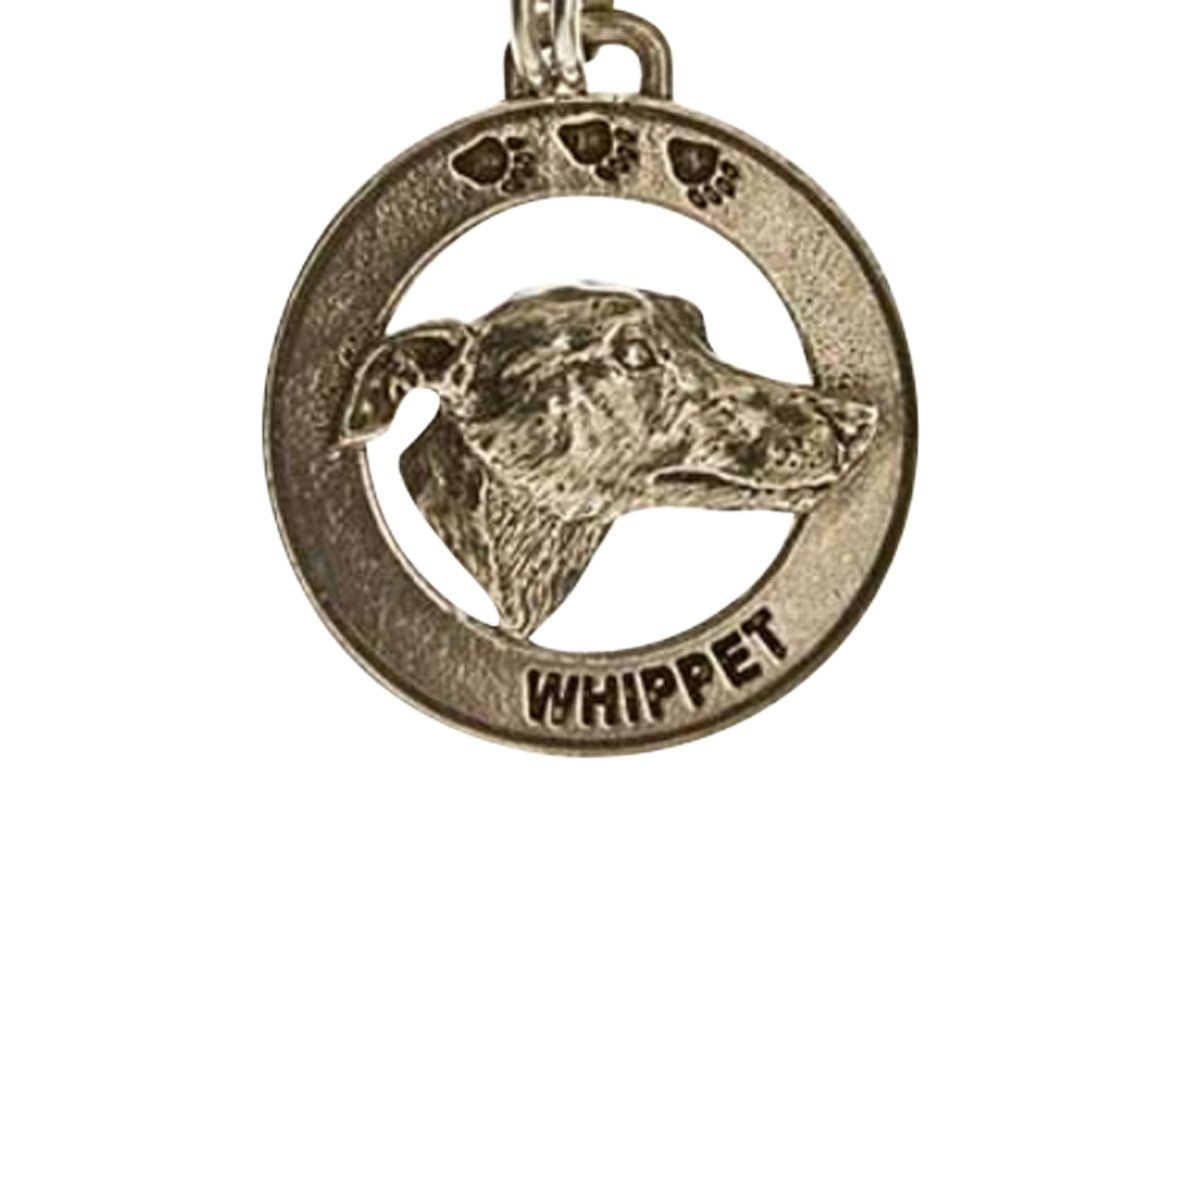 Creative Pewter Designs, Pewter Whippet Key Chain, Antiqued Finish, DK182